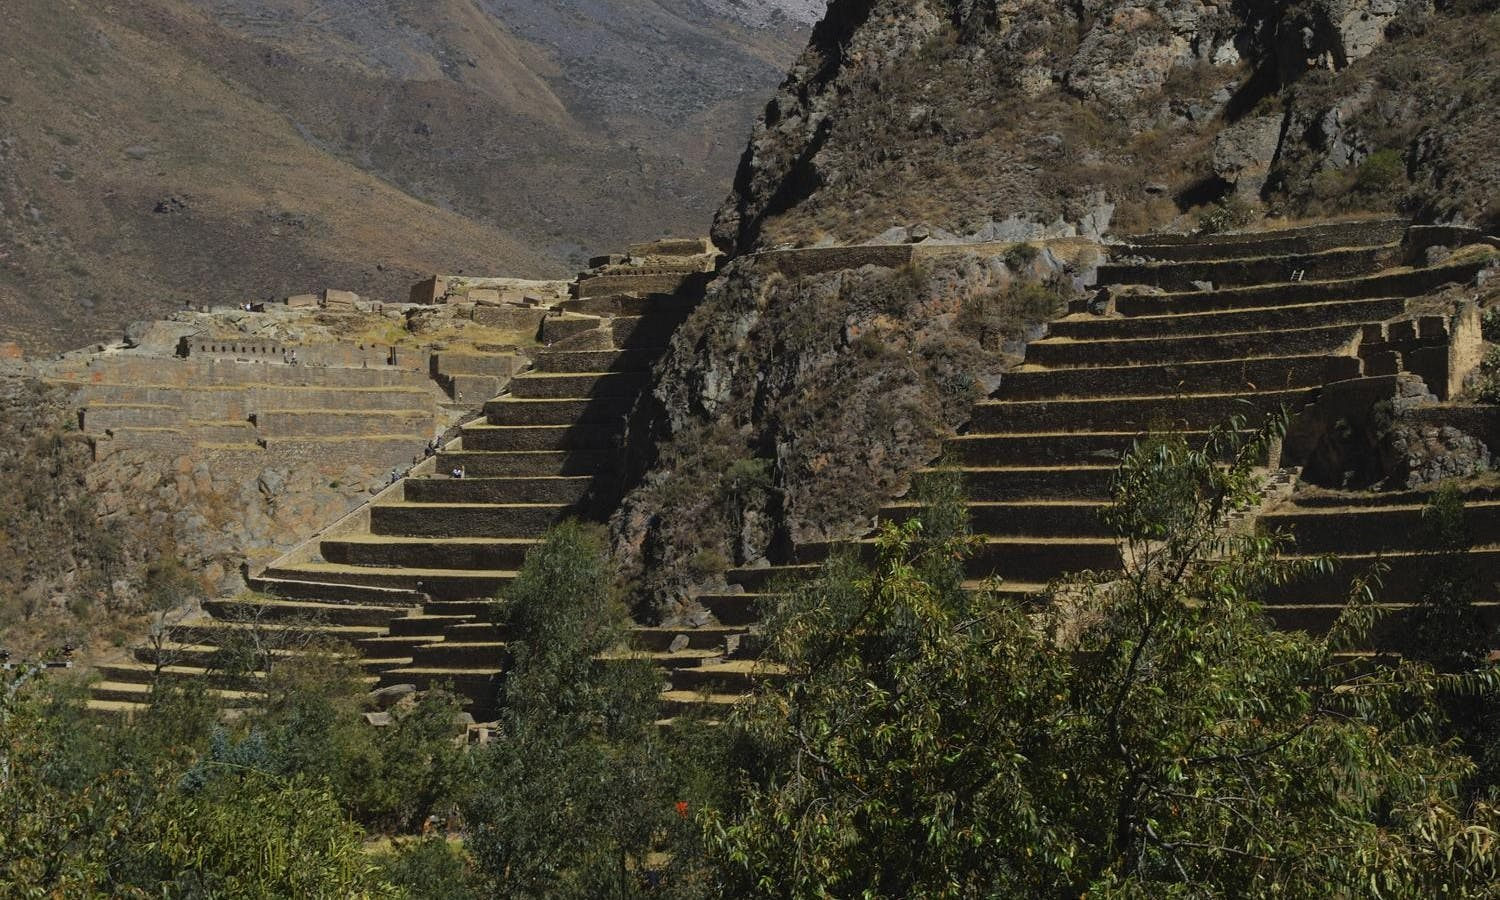 Tour of Sacred Valley of the Incas, Pisac and Ollantaytambo